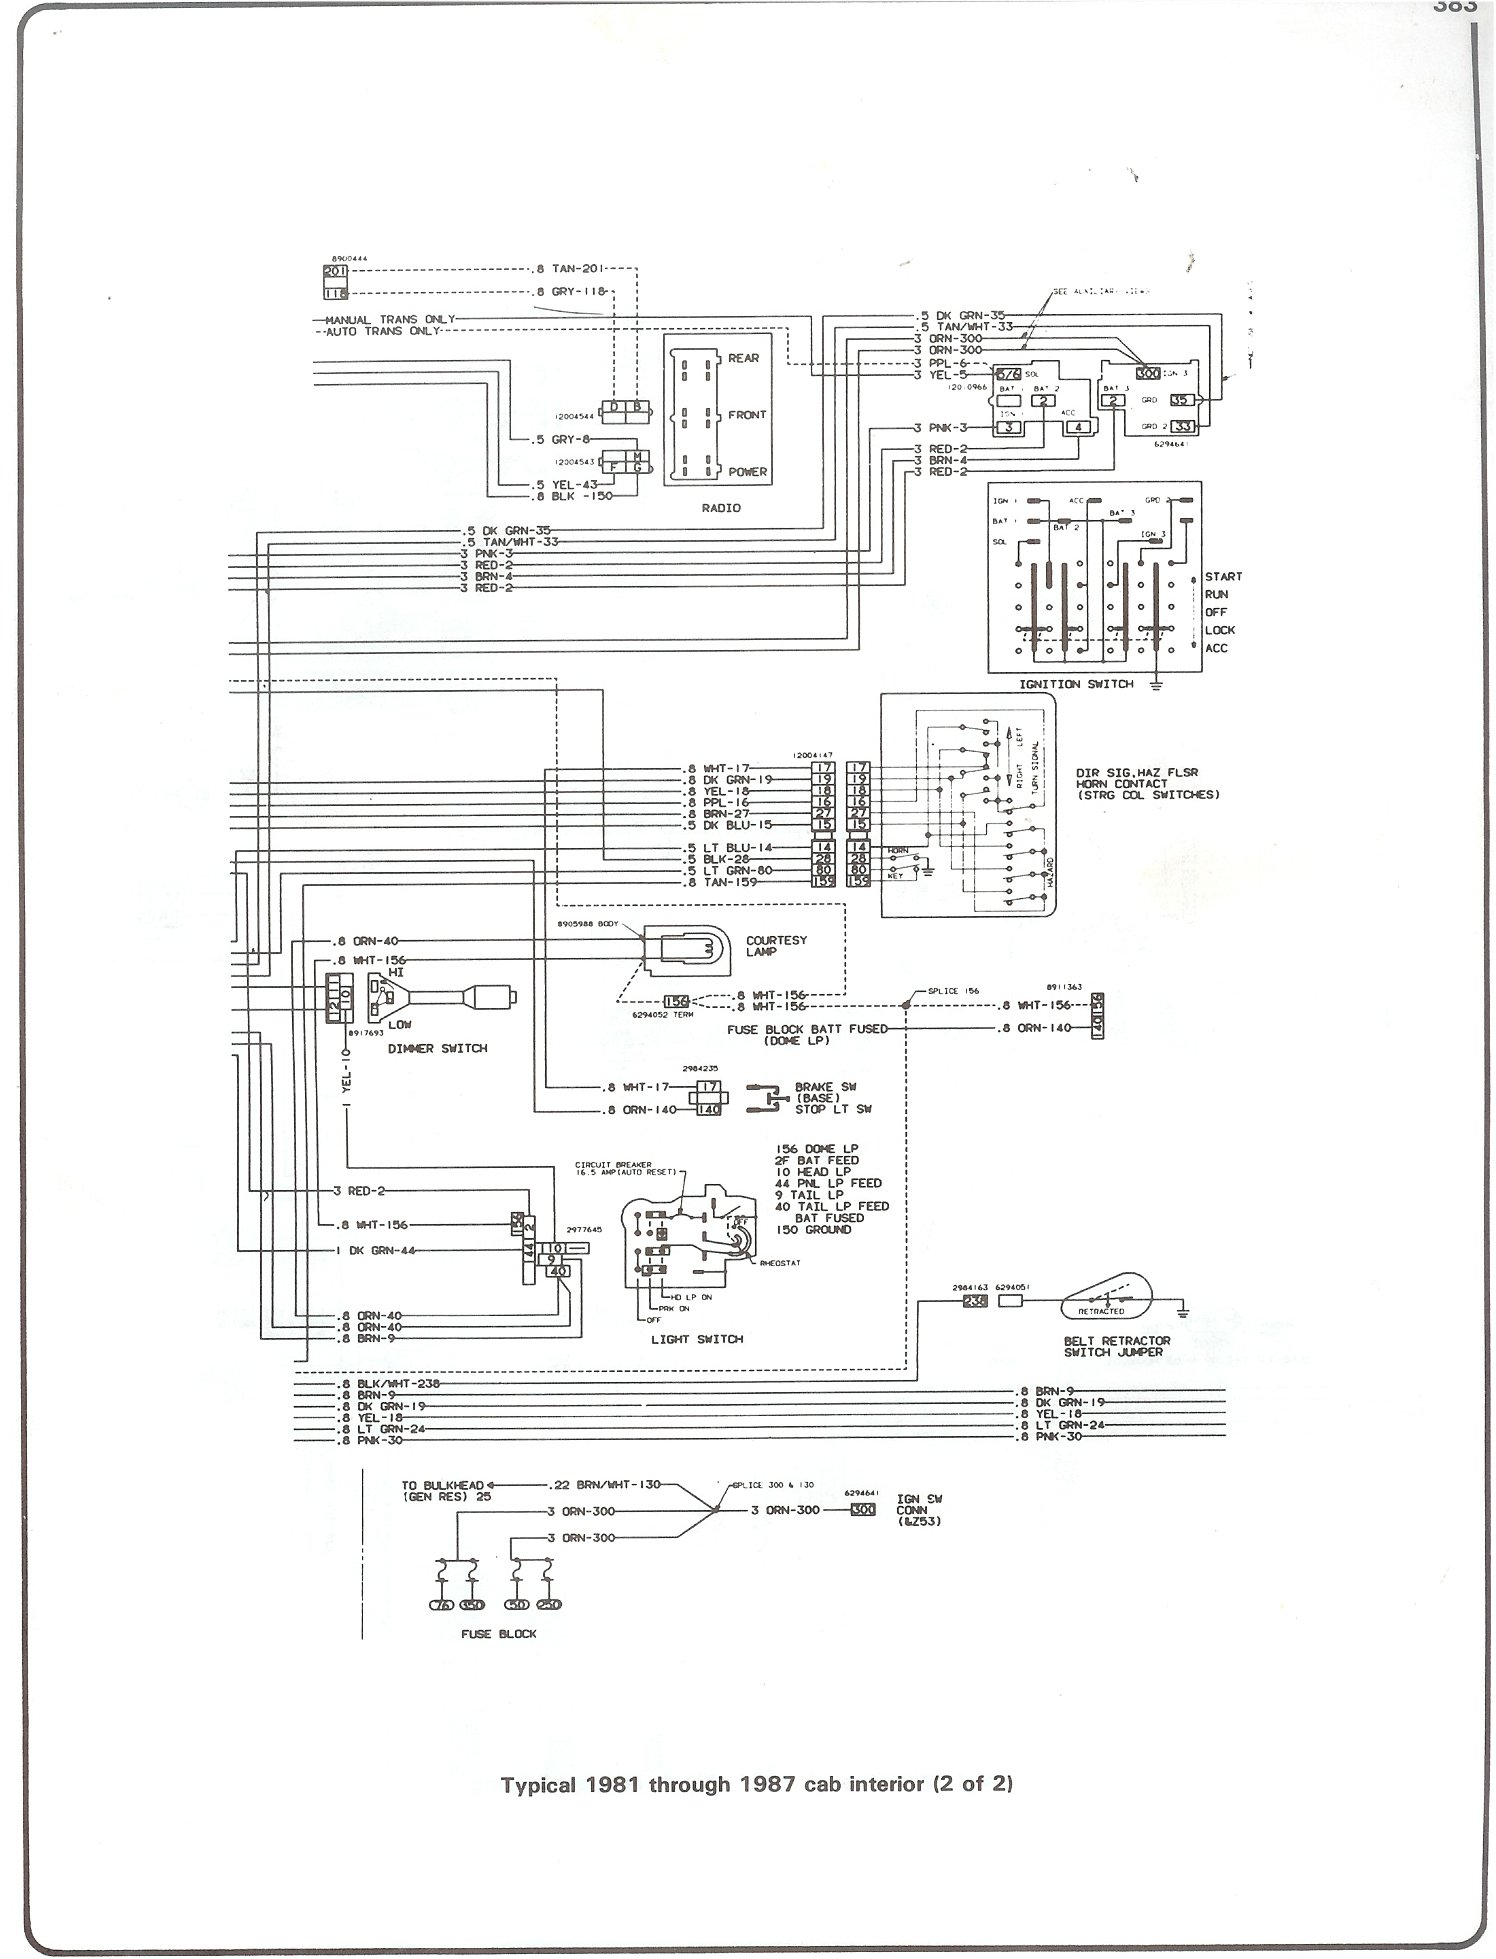 81 87_cab_inter_pg2 electrical diagrams chevy only page 2 truck forum 87 chevy truck wiring diagram at creativeand.co